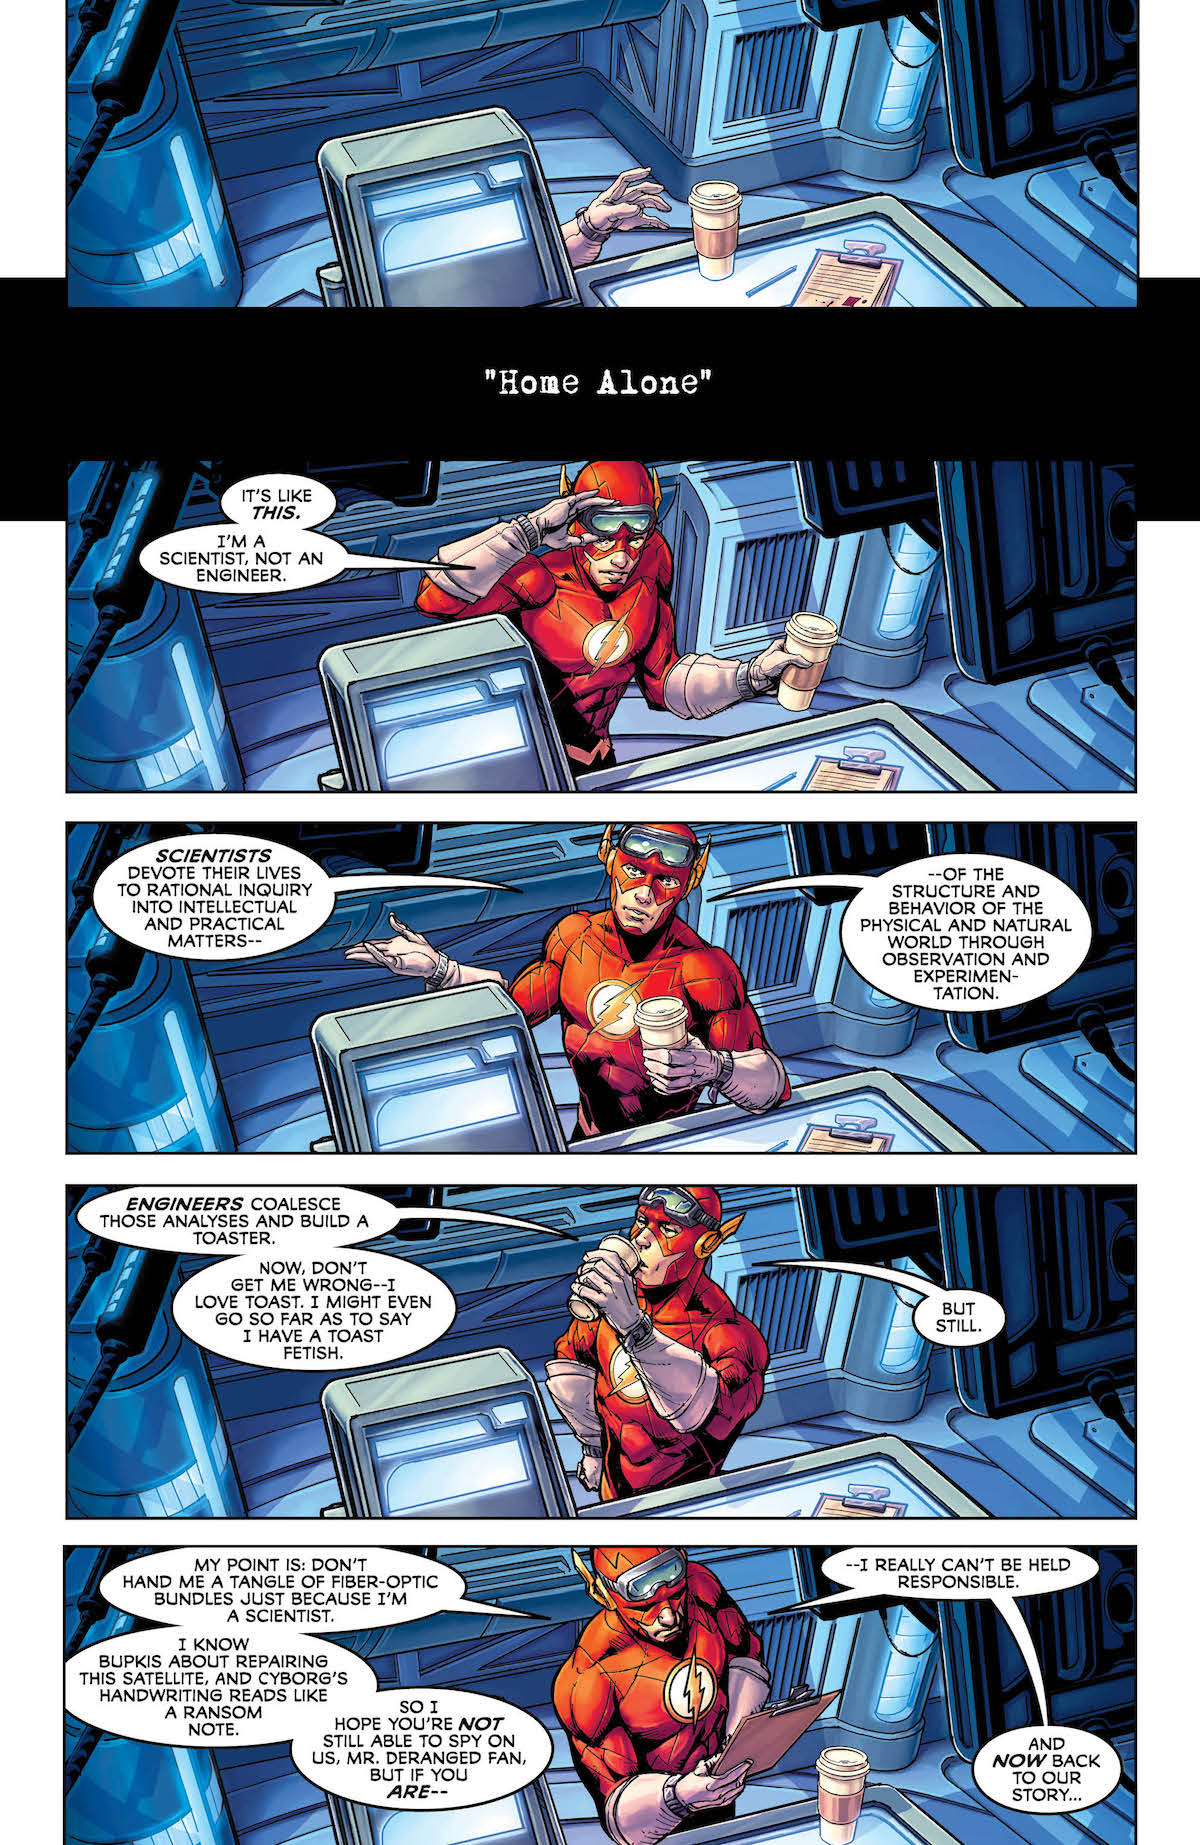 Justice League #38 page 1 The Flash